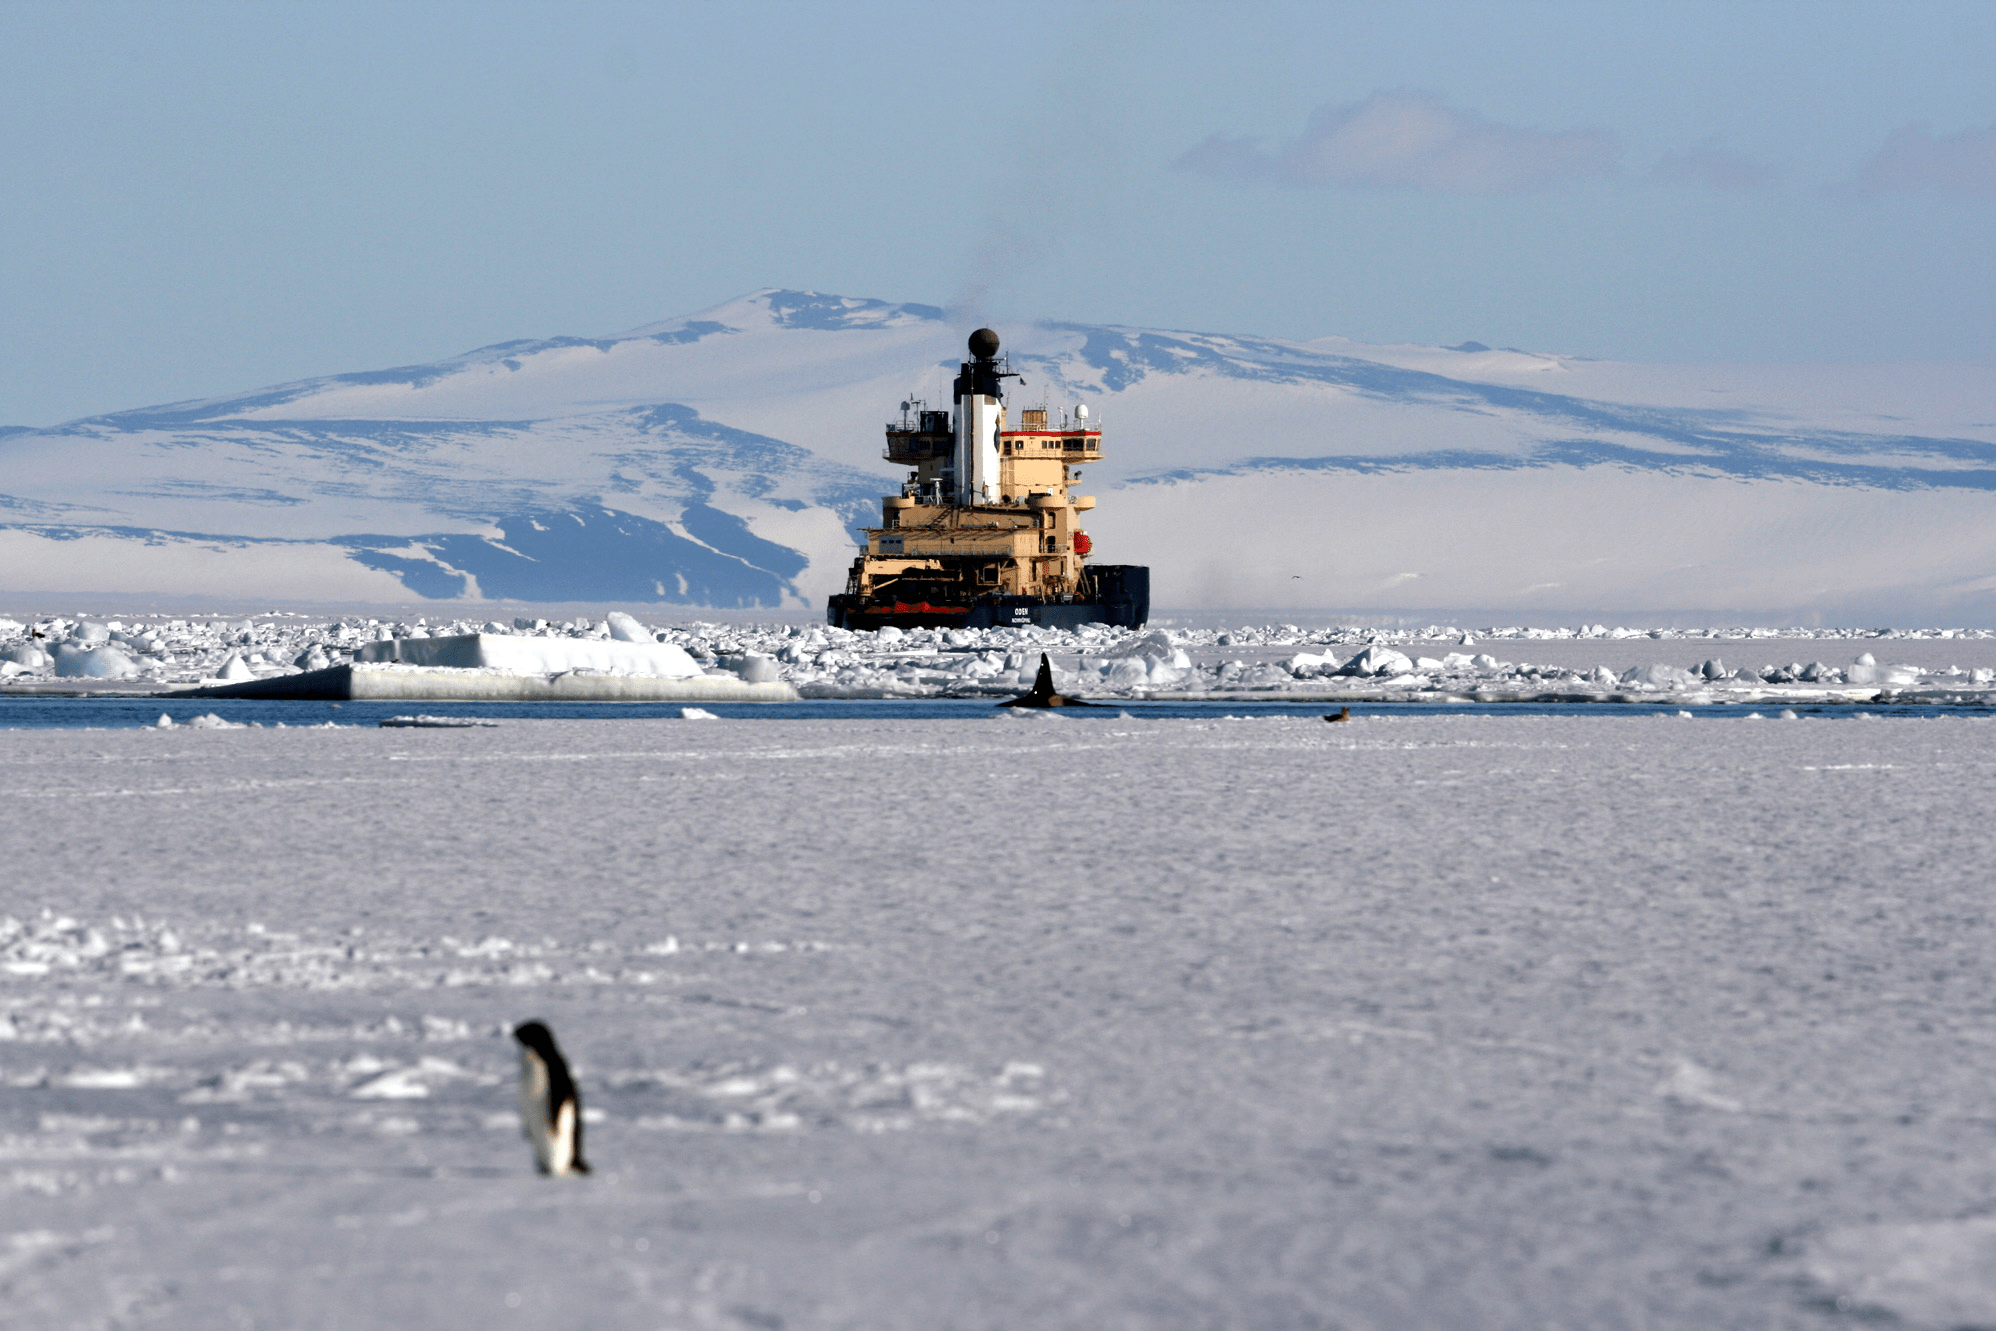 Icebreaker on the Antarctic coast